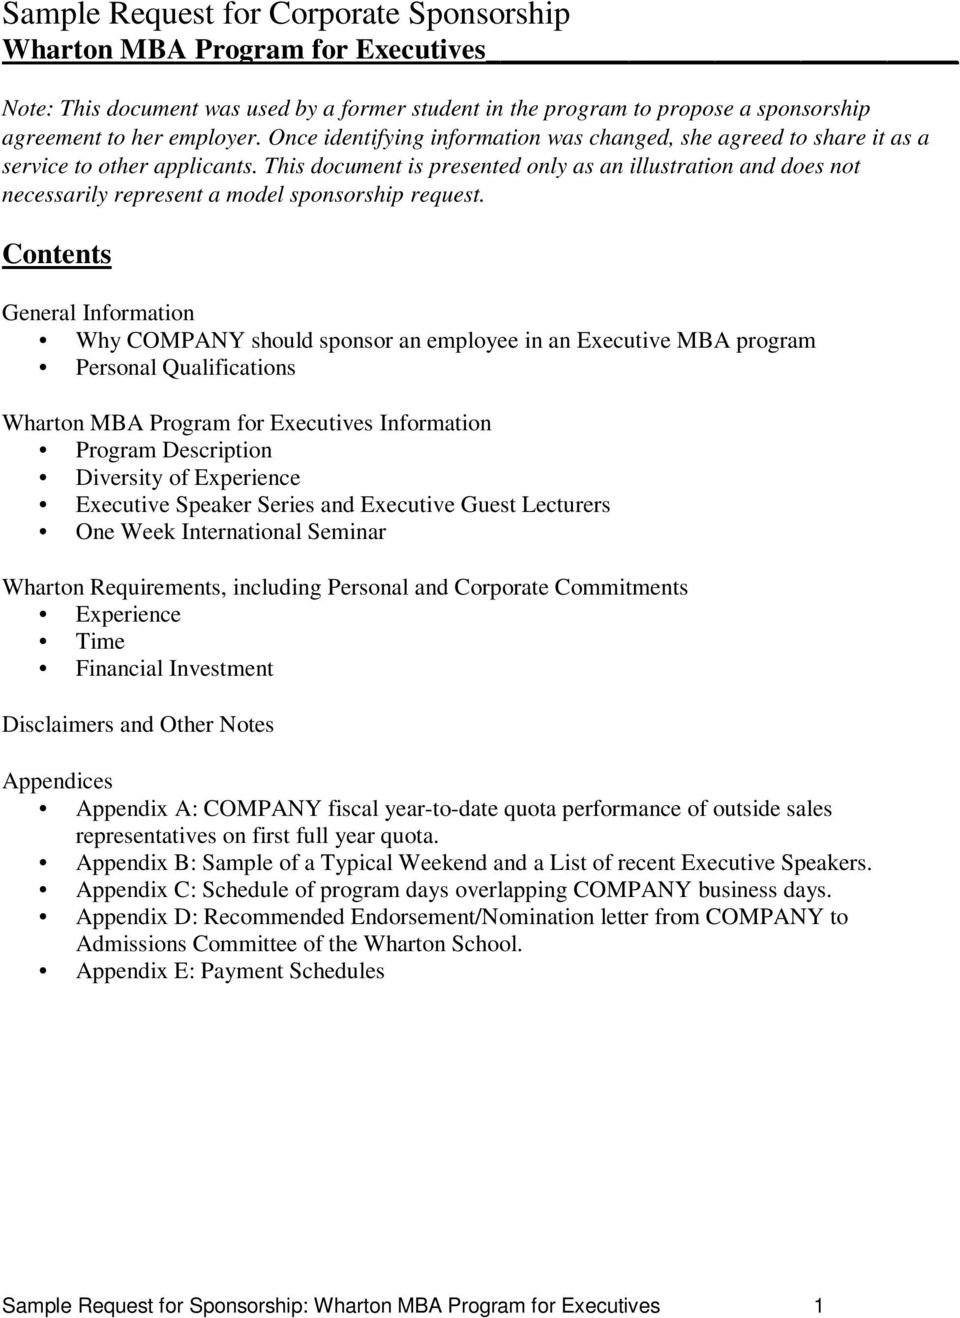 Essay formats student services scam